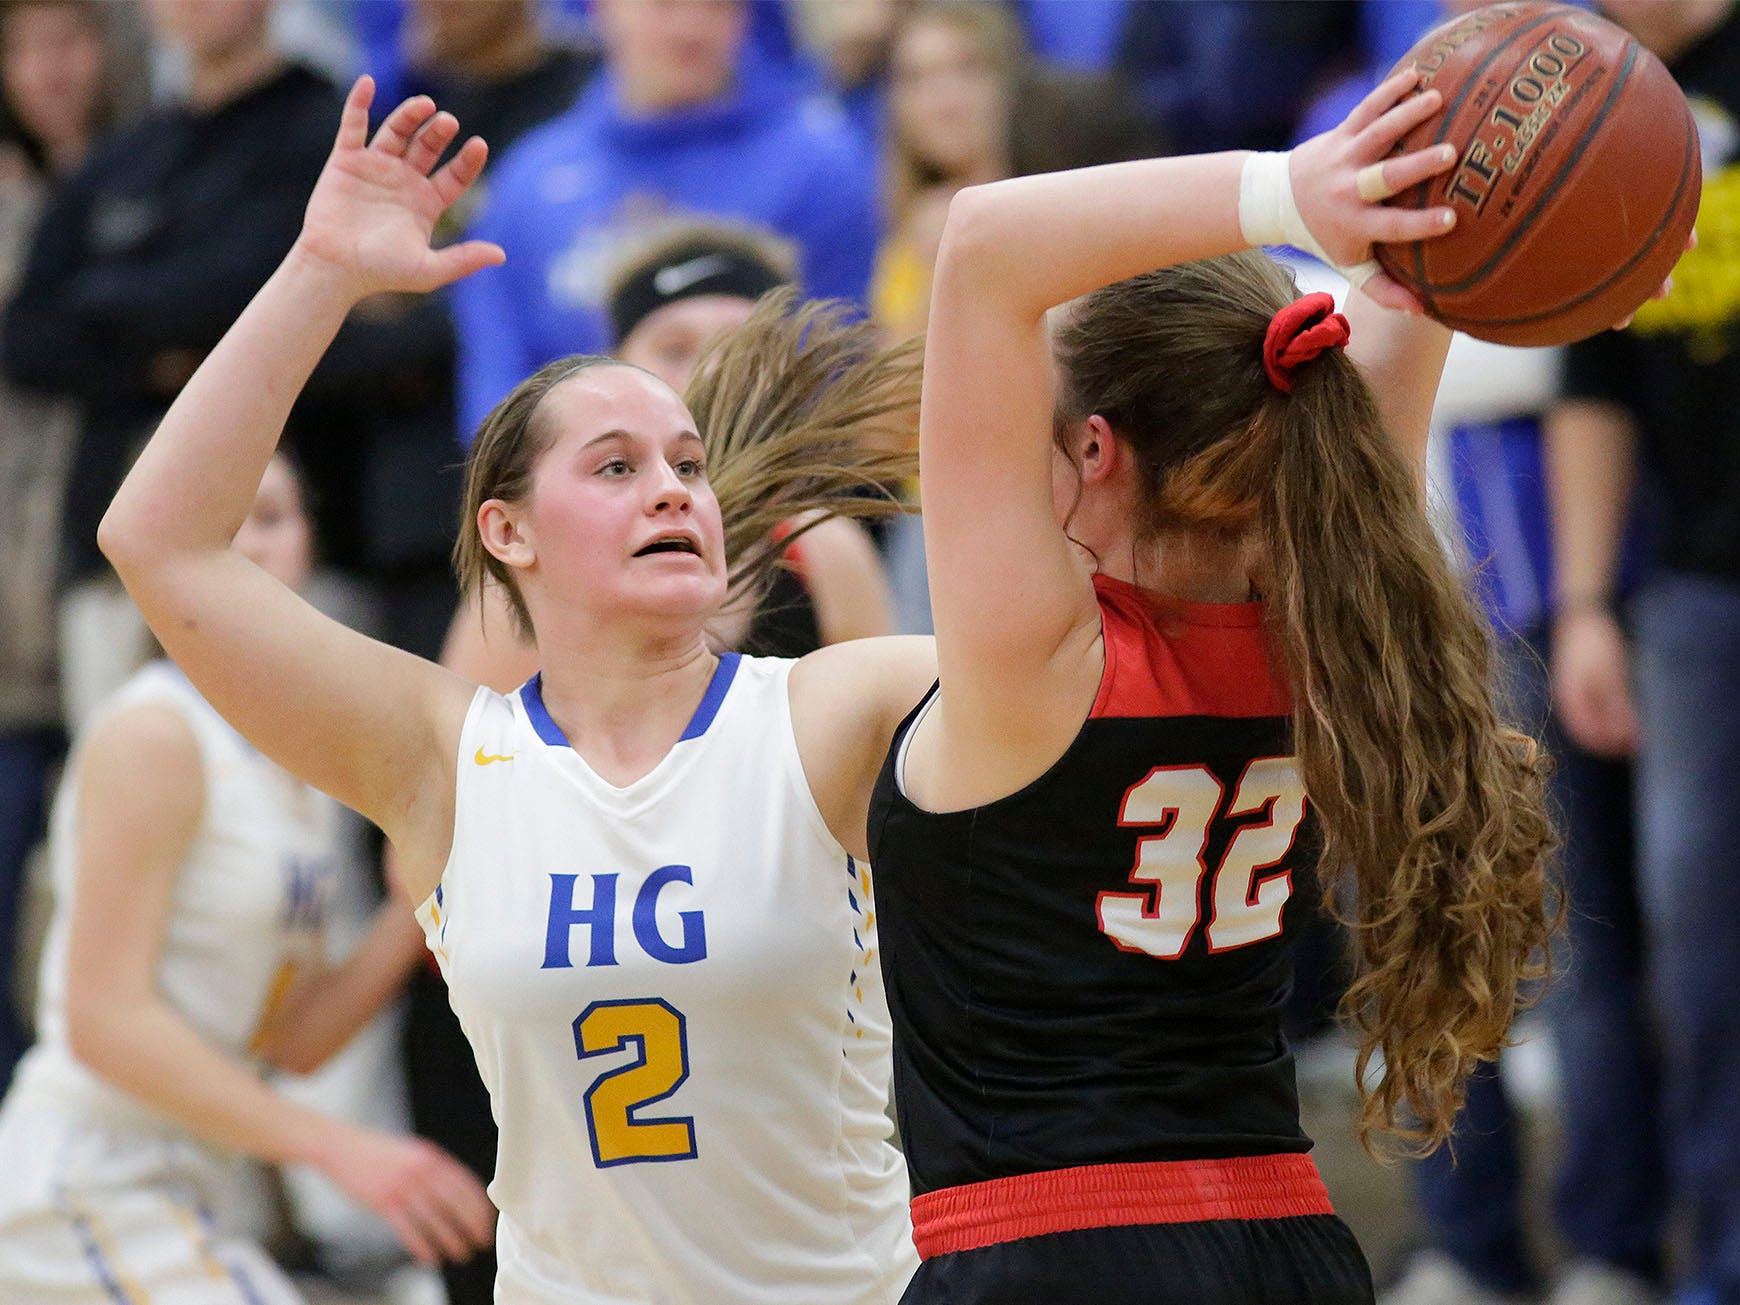 Oostburg's Cambell Van Ess (32) looks to pass the ball beyond Howards Grove's Zayla Mueller (2), Saturday, February 23, 2019, at Howards Grove, Wis.